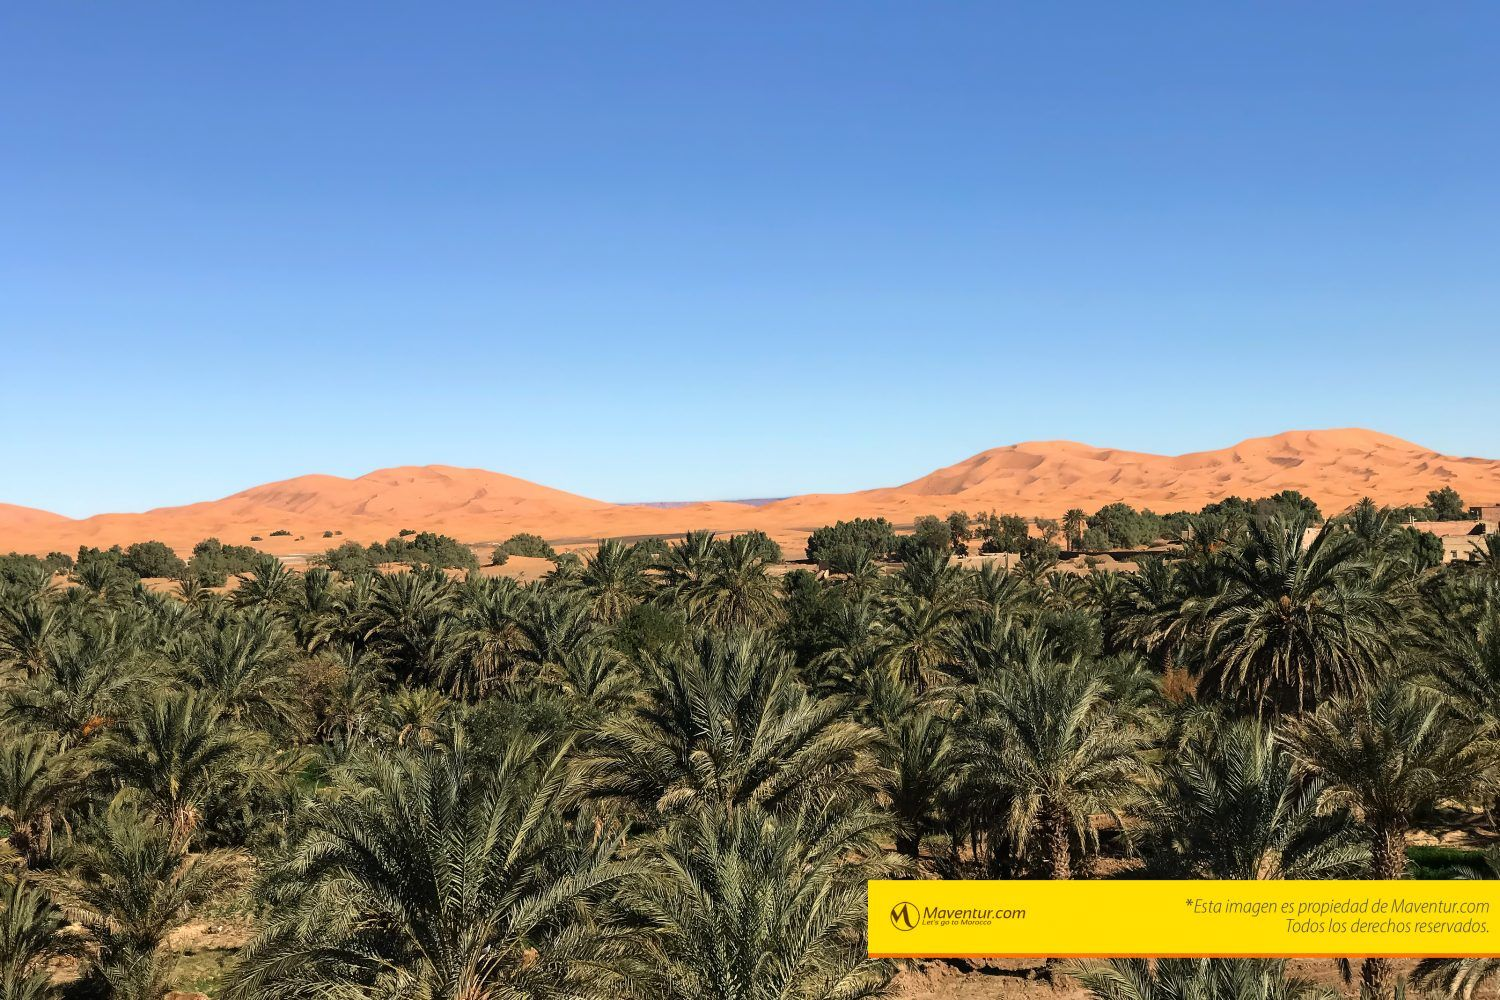 Erg-chebbi-merzouga-tour-vuelta-excursion-maventur